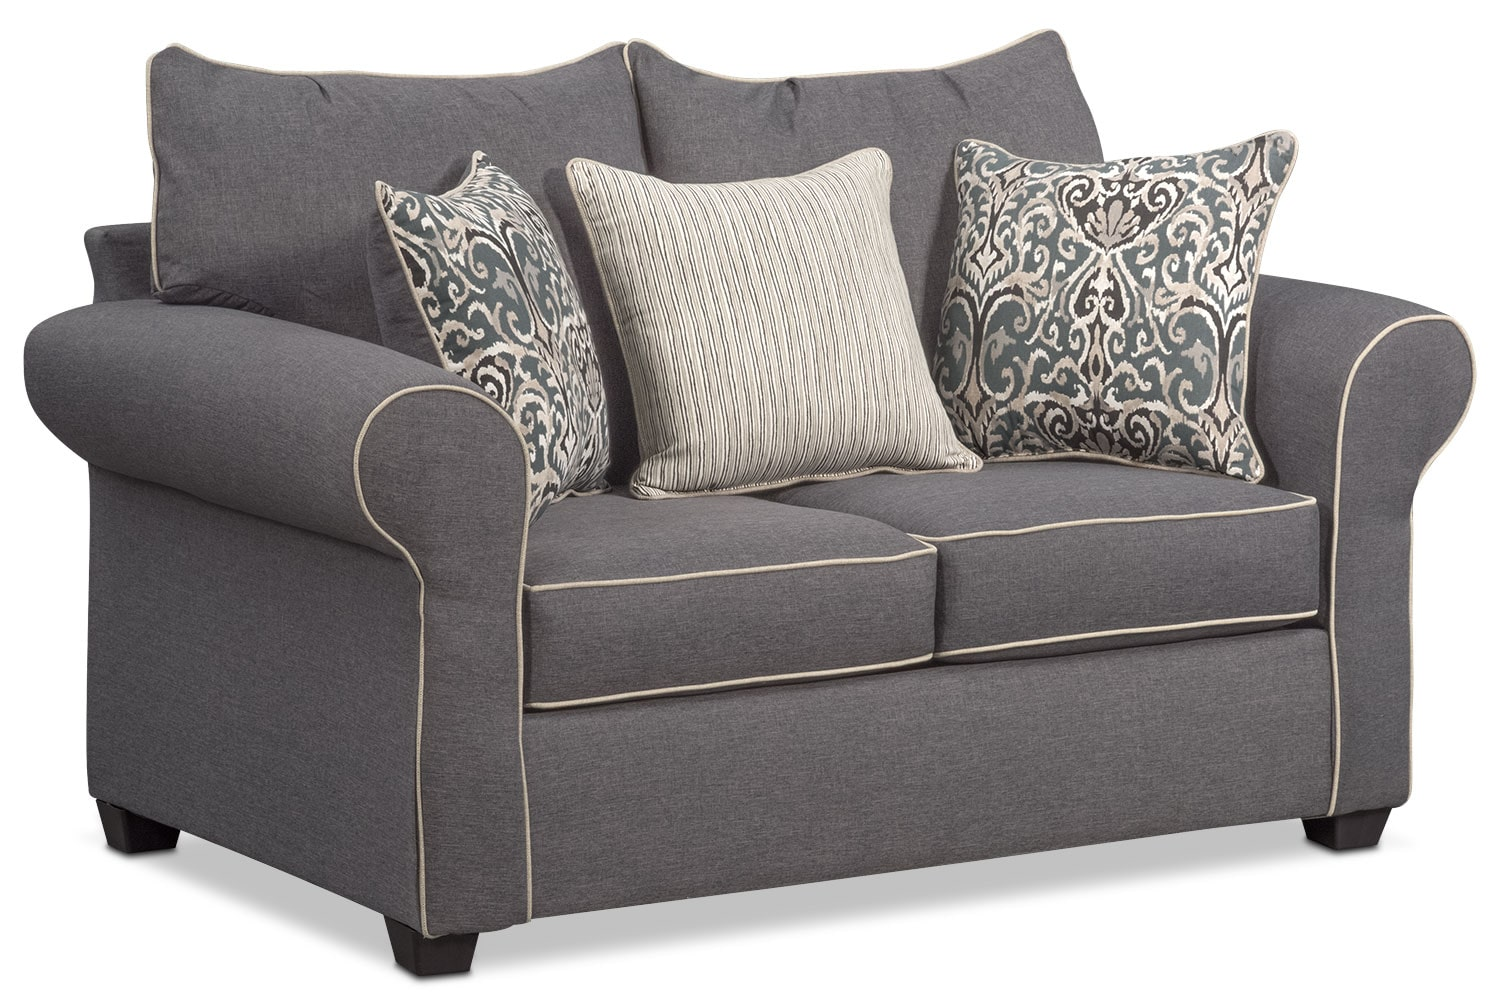 Sleeping Chair Carla Queen Innerspring Sleeper Sofa Loveseat And Accent